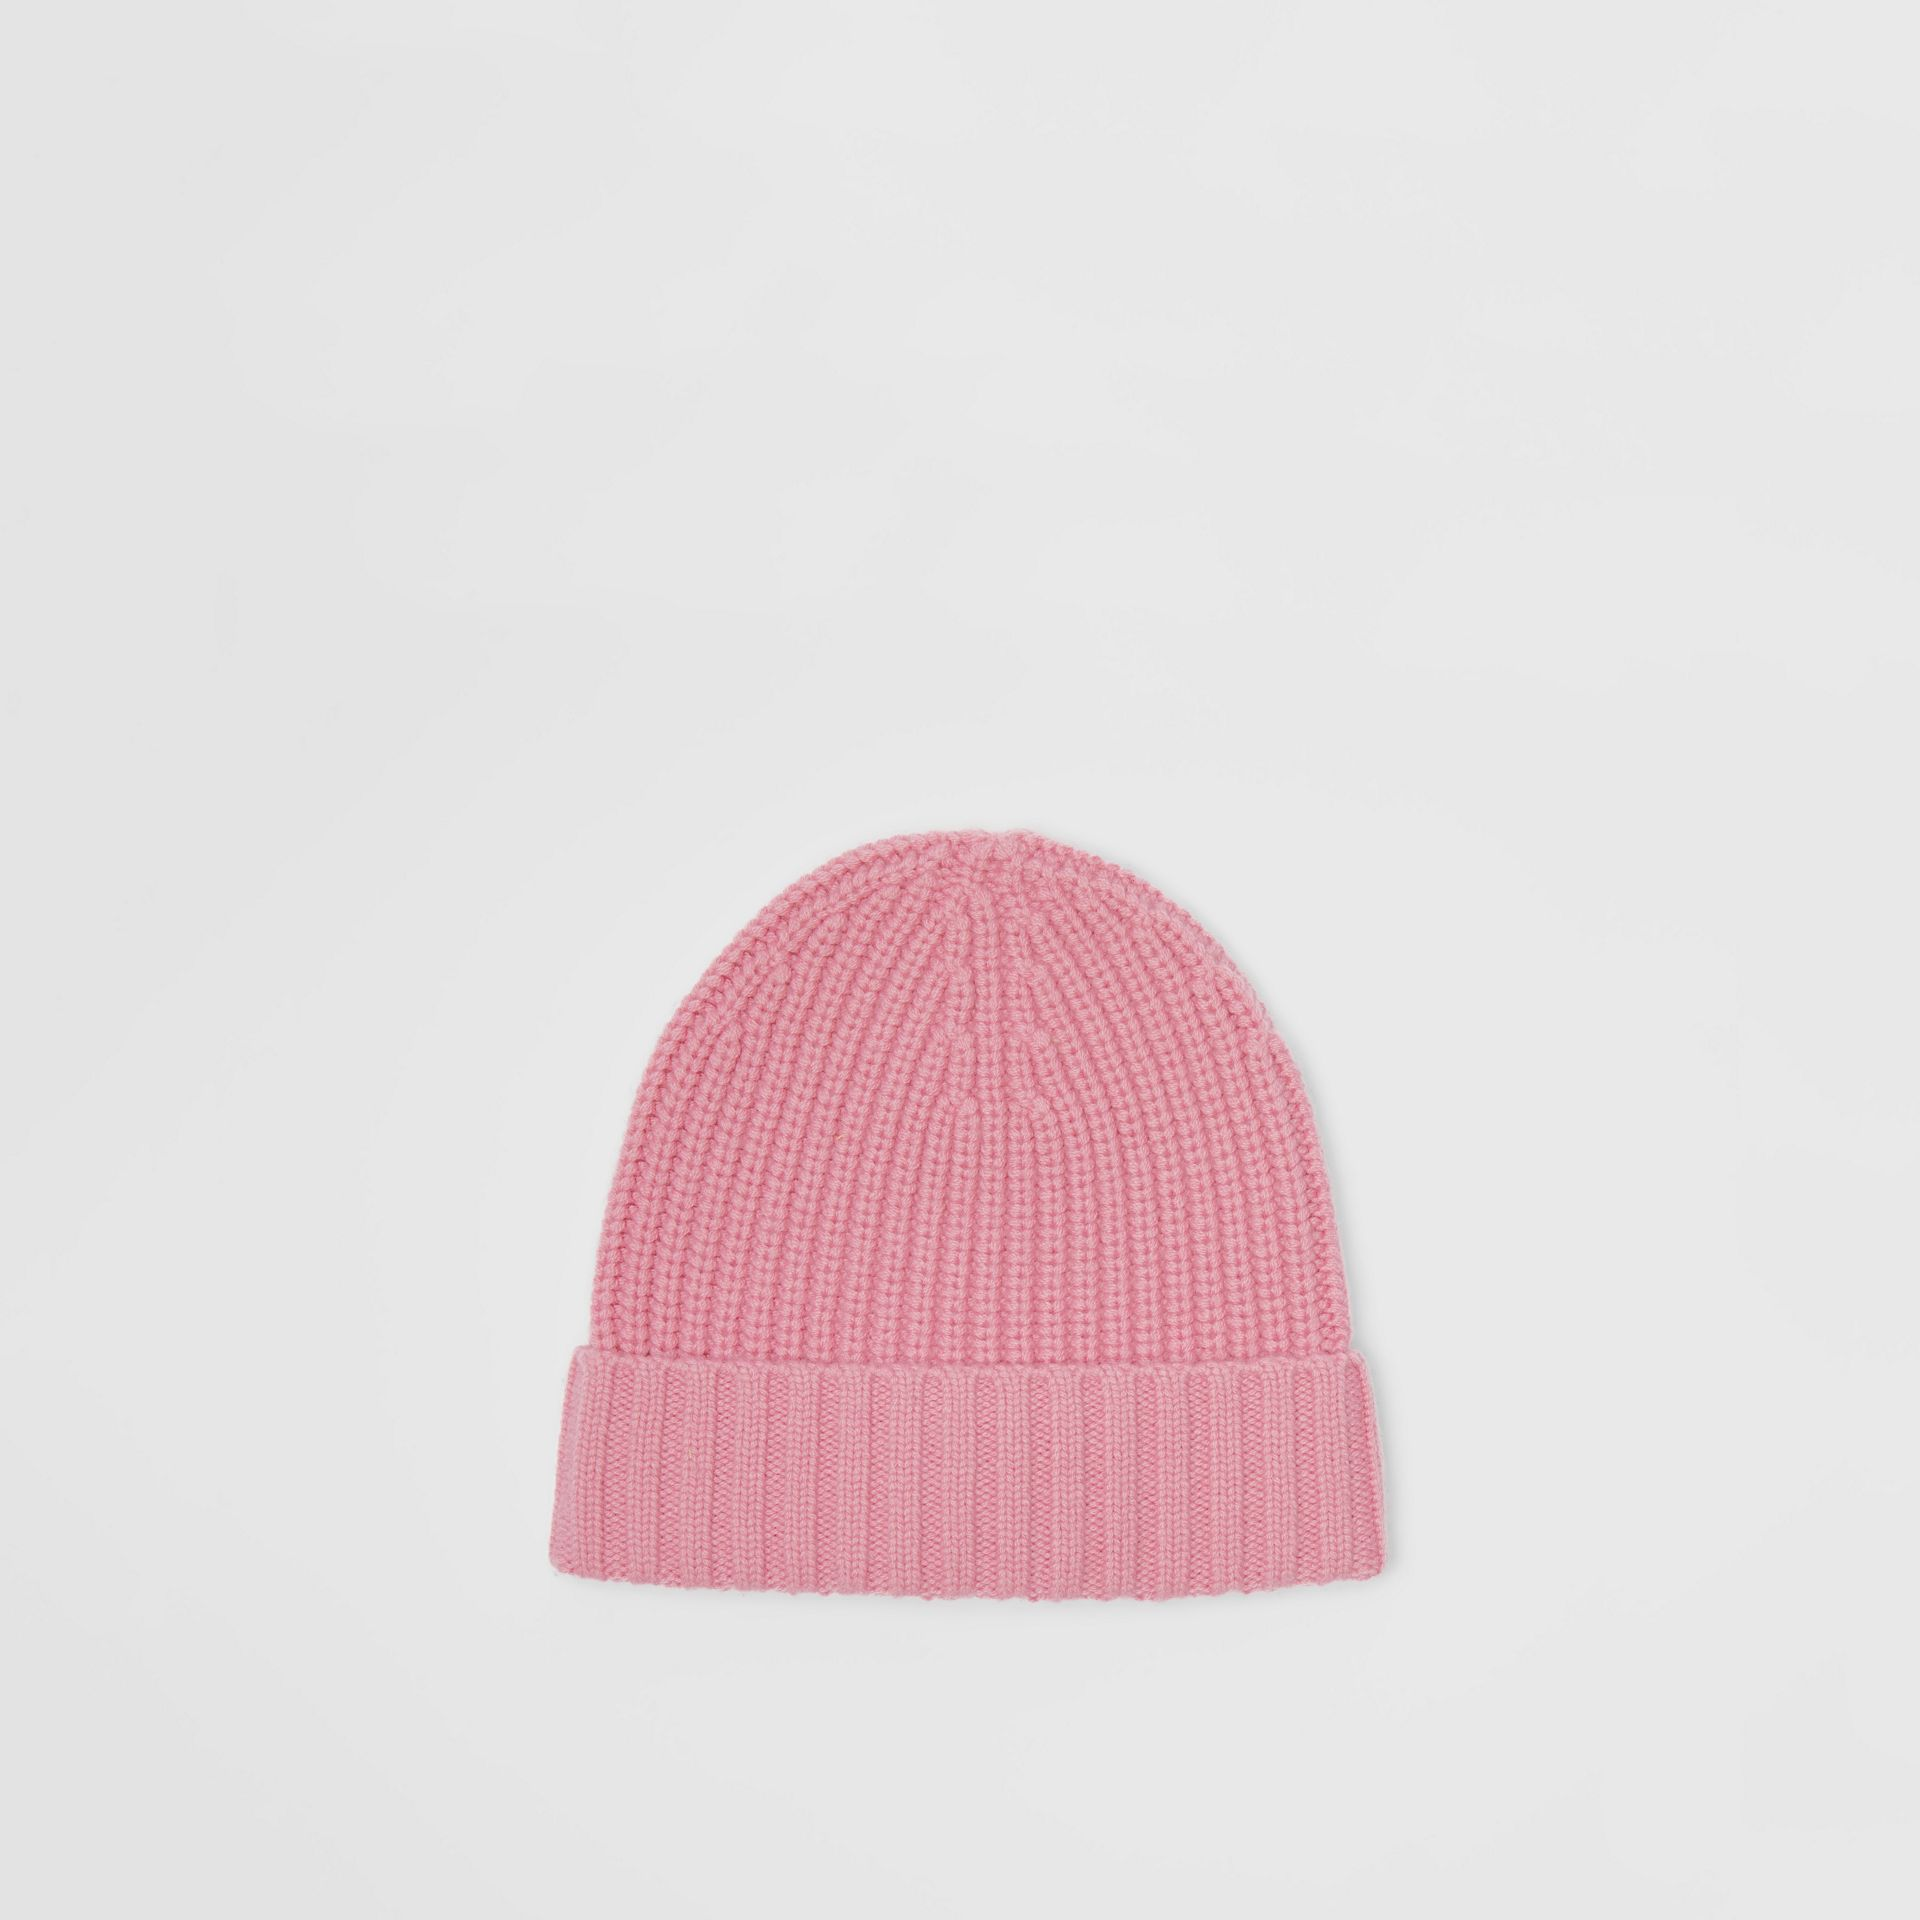 Embroidered Crest Rib Knit Wool Cashmere Beanie in Rose Pink | Burberry United States - gallery image 4